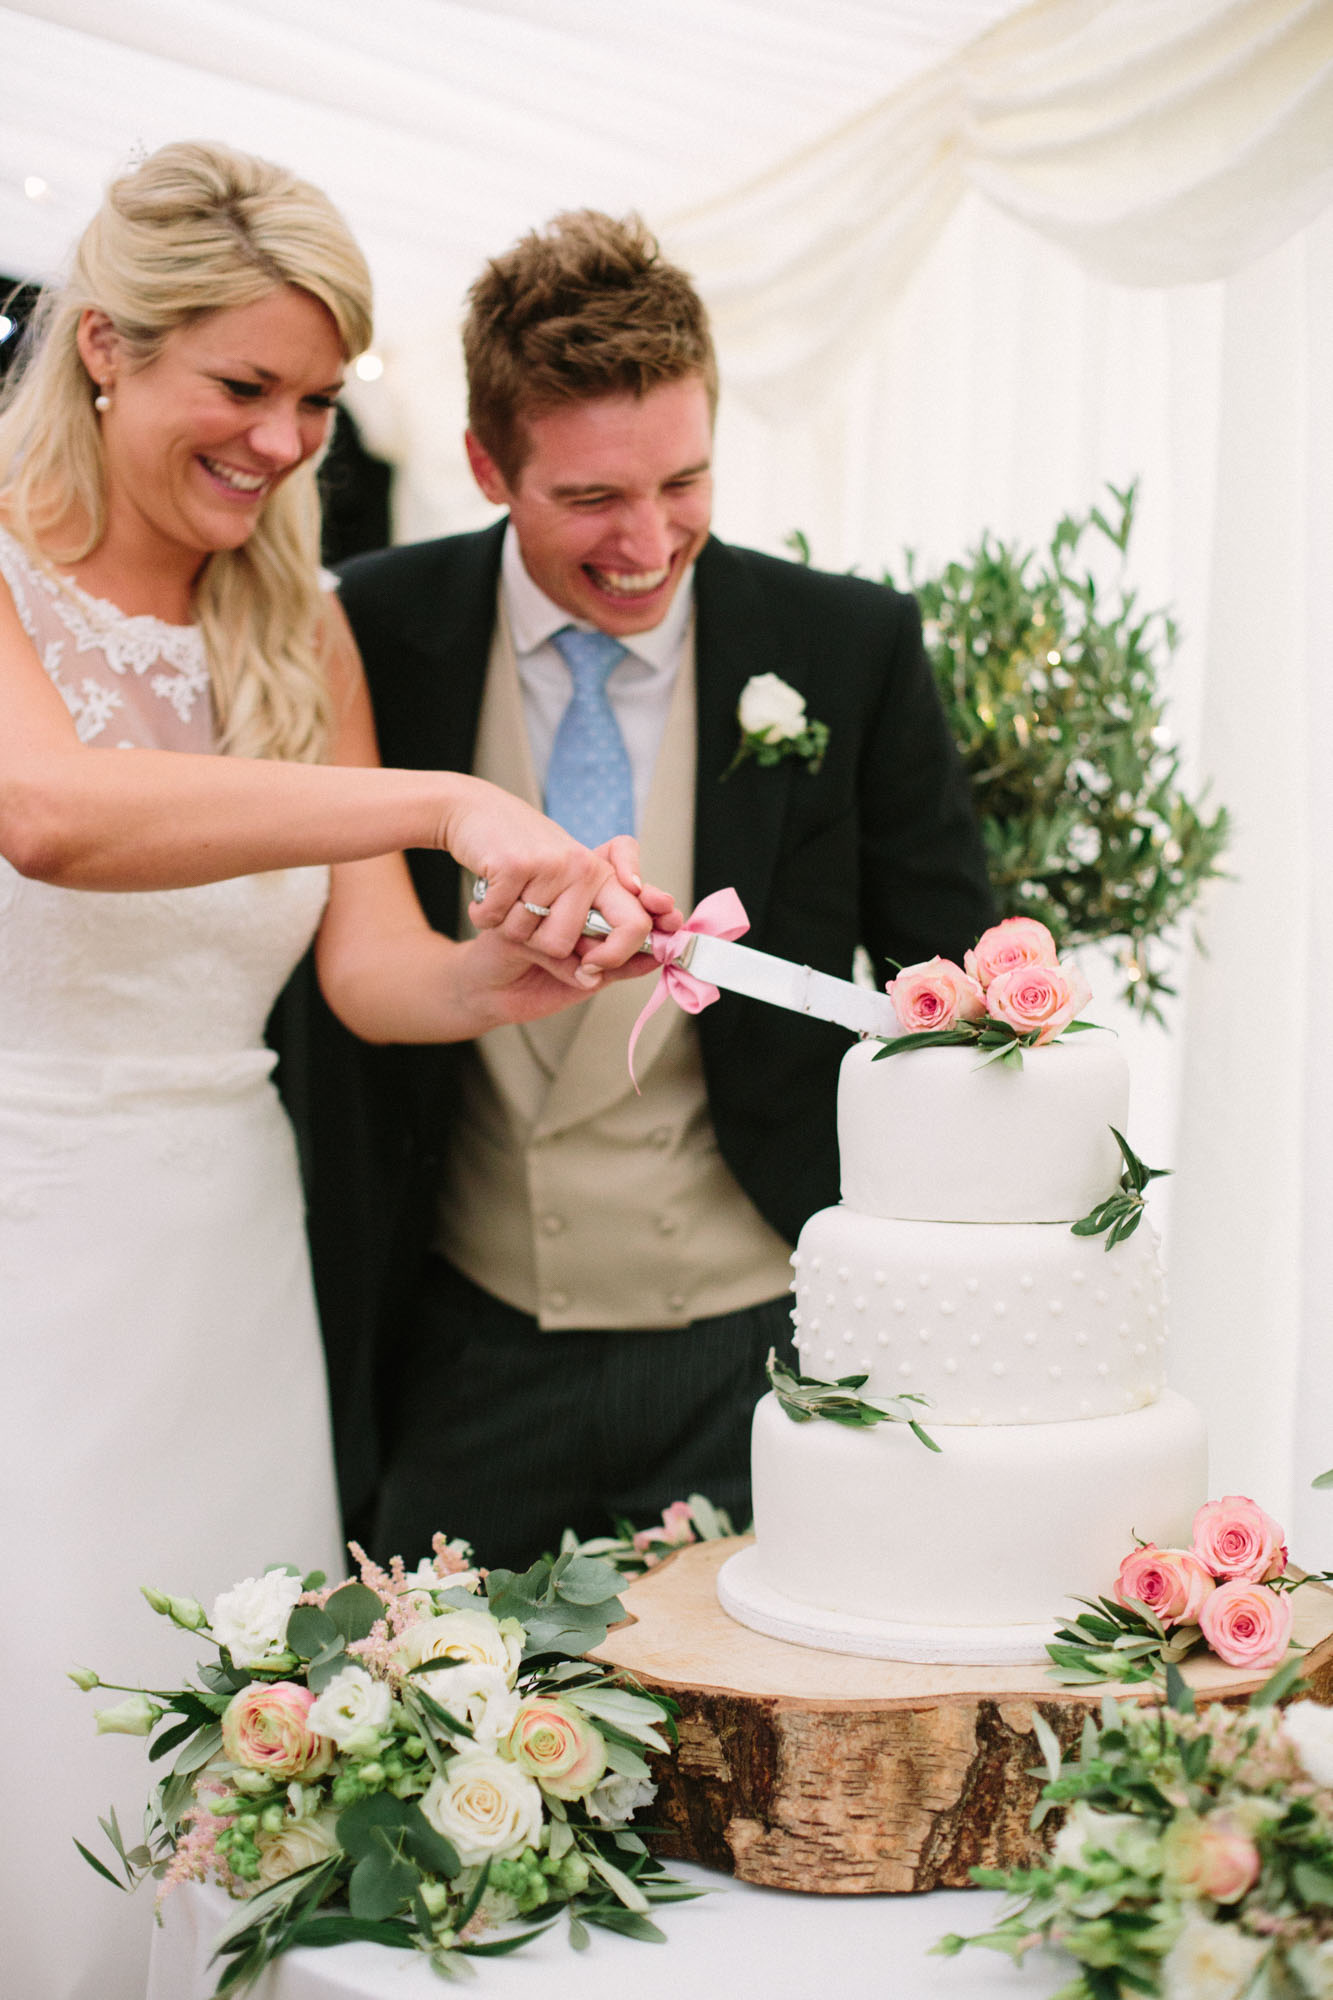 Bride and groom cutting three tiered white wedding cake decorated with pink roses